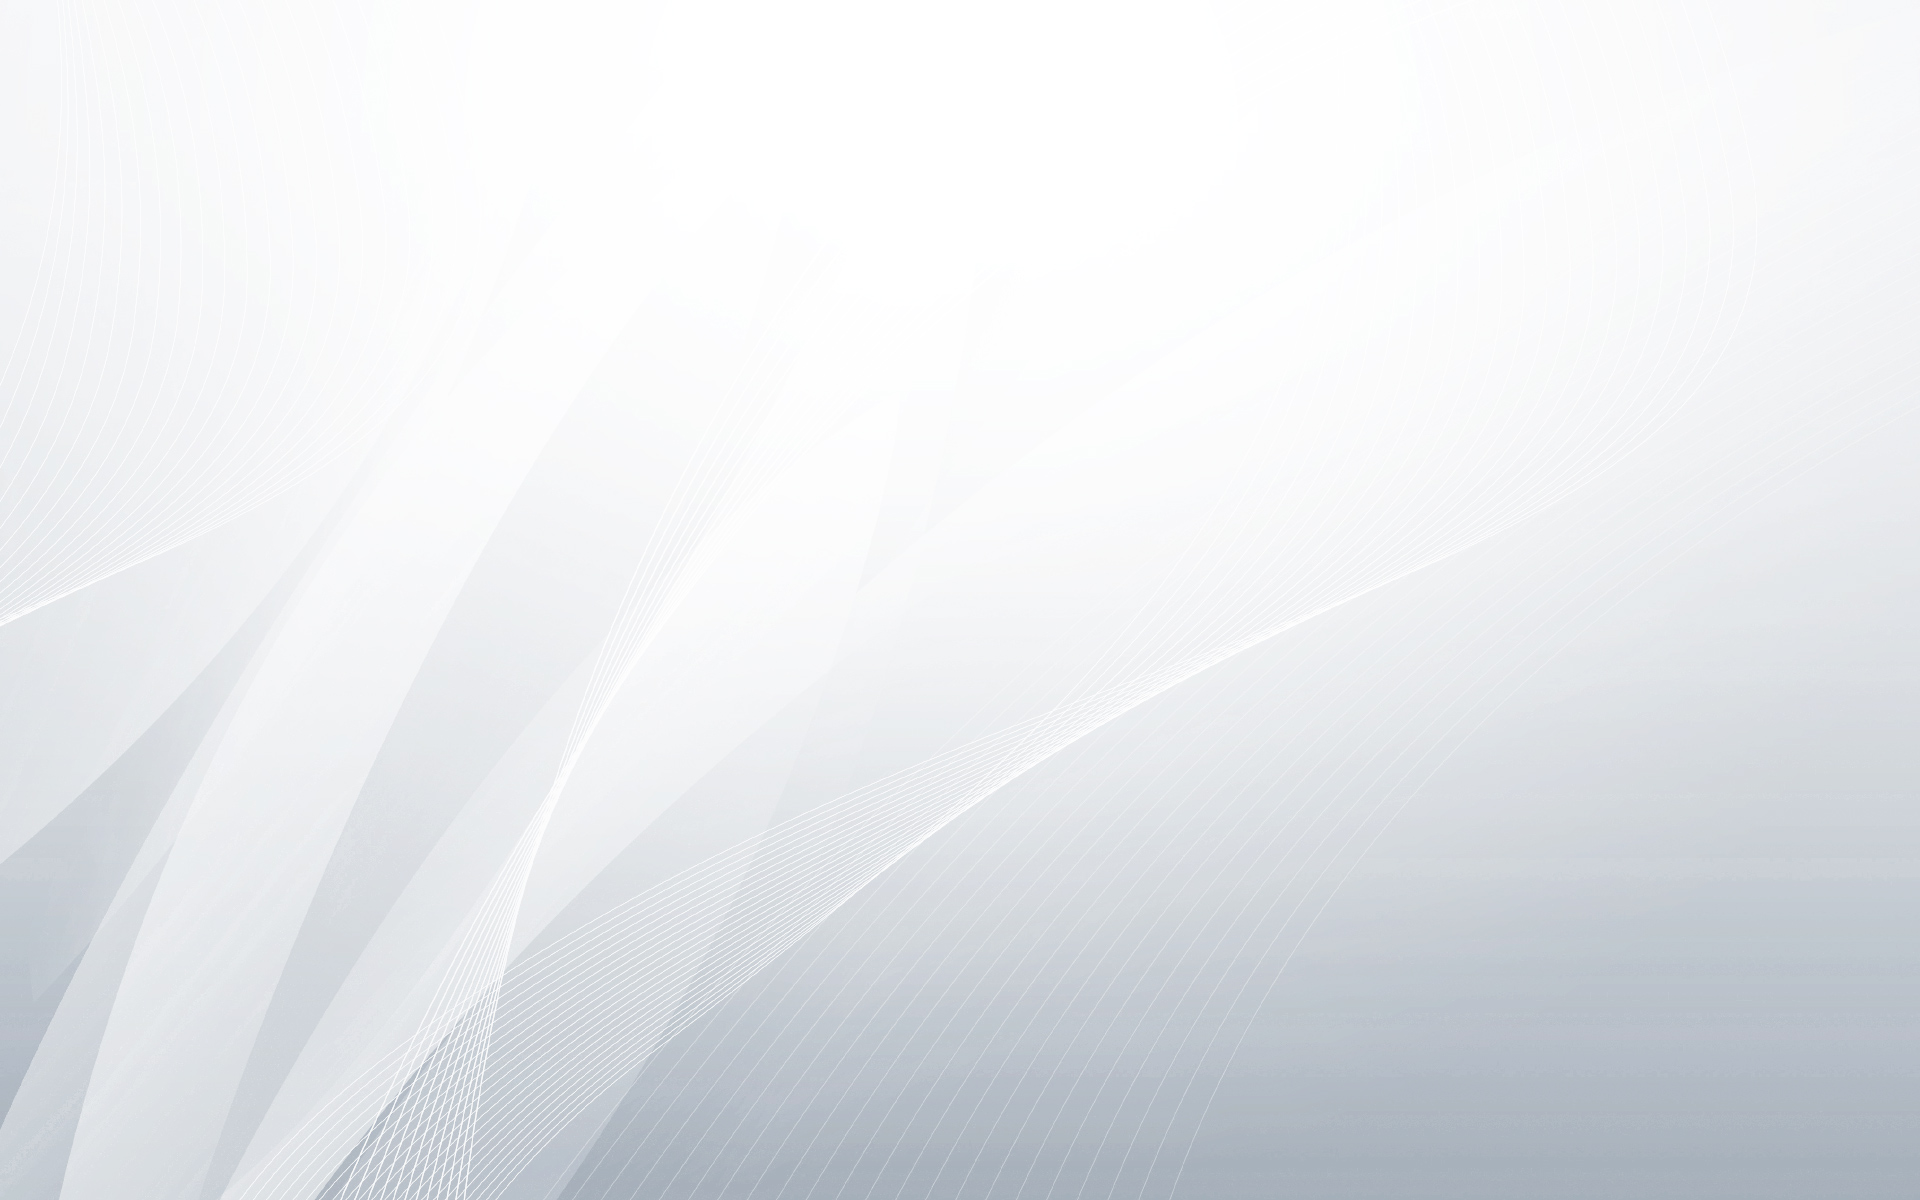 Abstract-Background-White - North Peak Investments